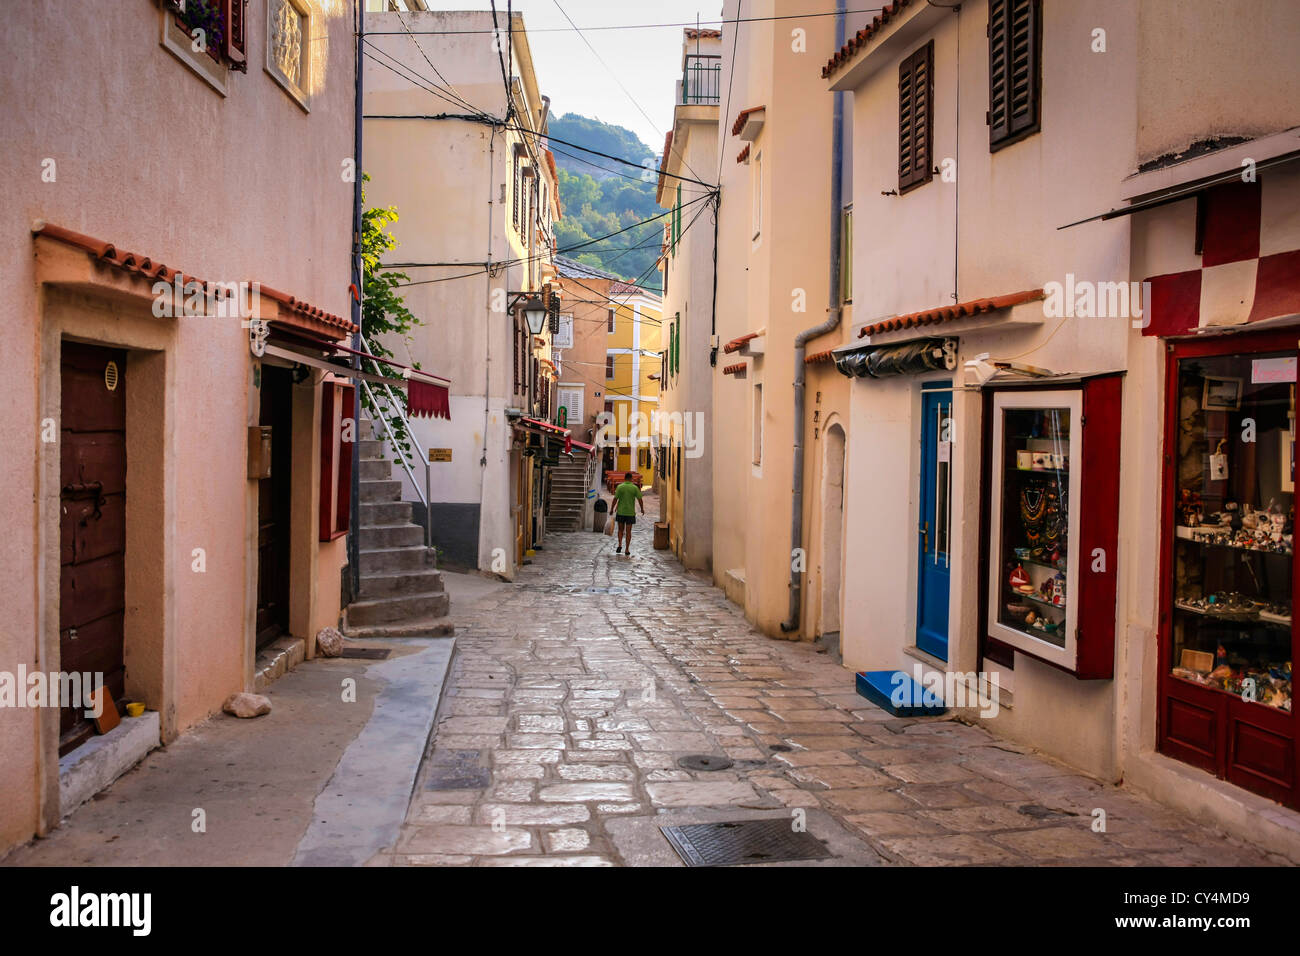 The narrow streets and building of Baska village on the island of Krk Croatia - Stock Image